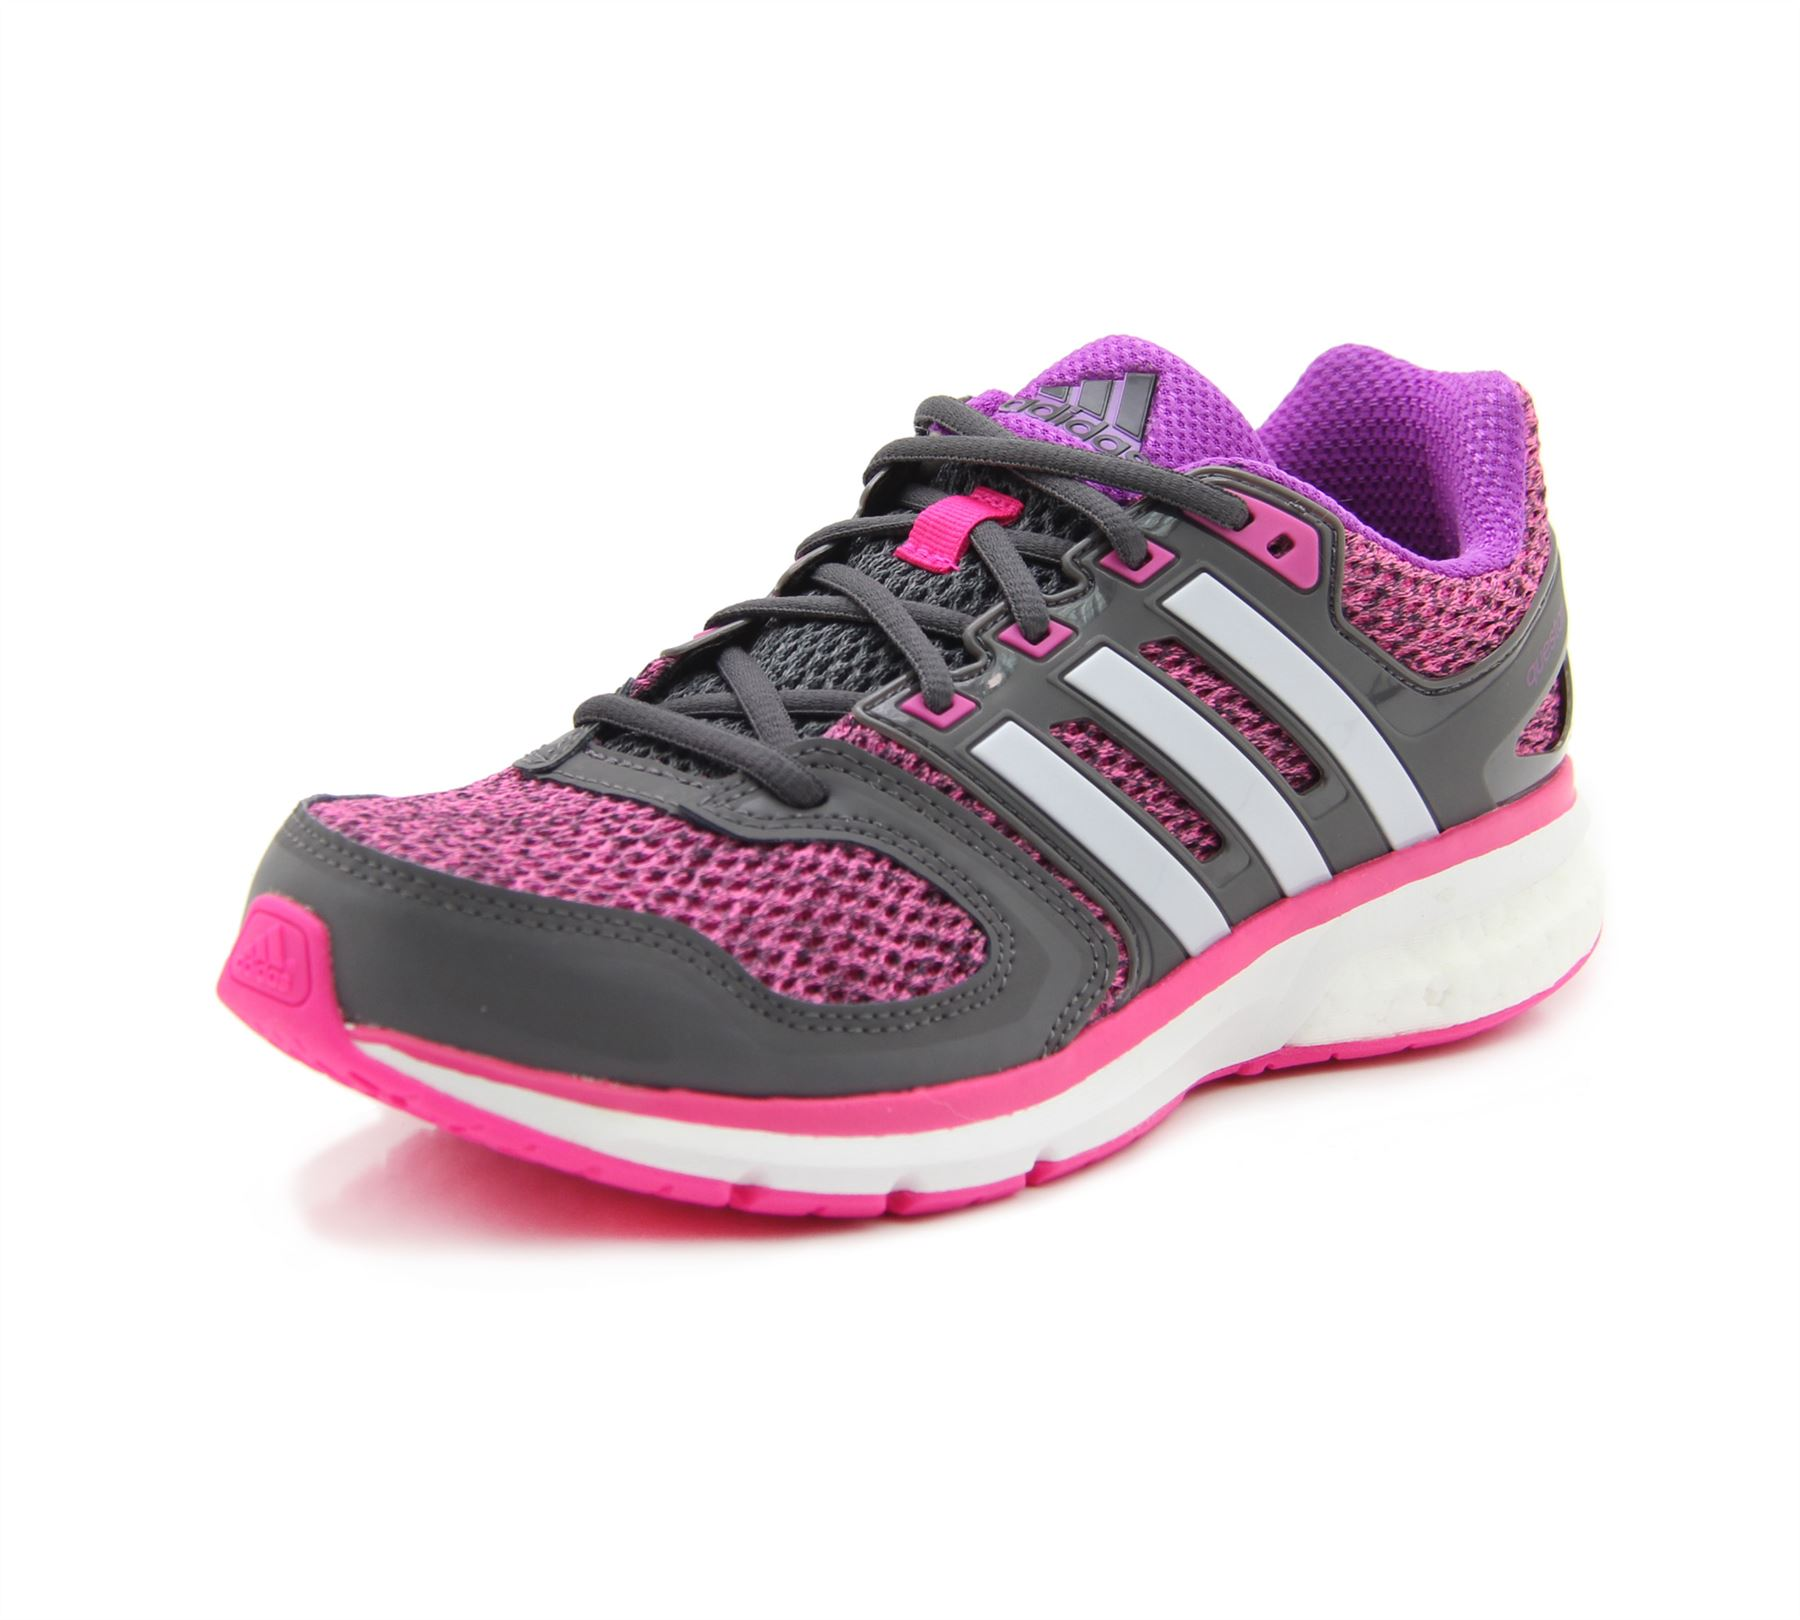 8347b1f45 ... adidas Questar Boost Running Shoes Womens Pink/Grey/Purple Fitness  Trainers ...